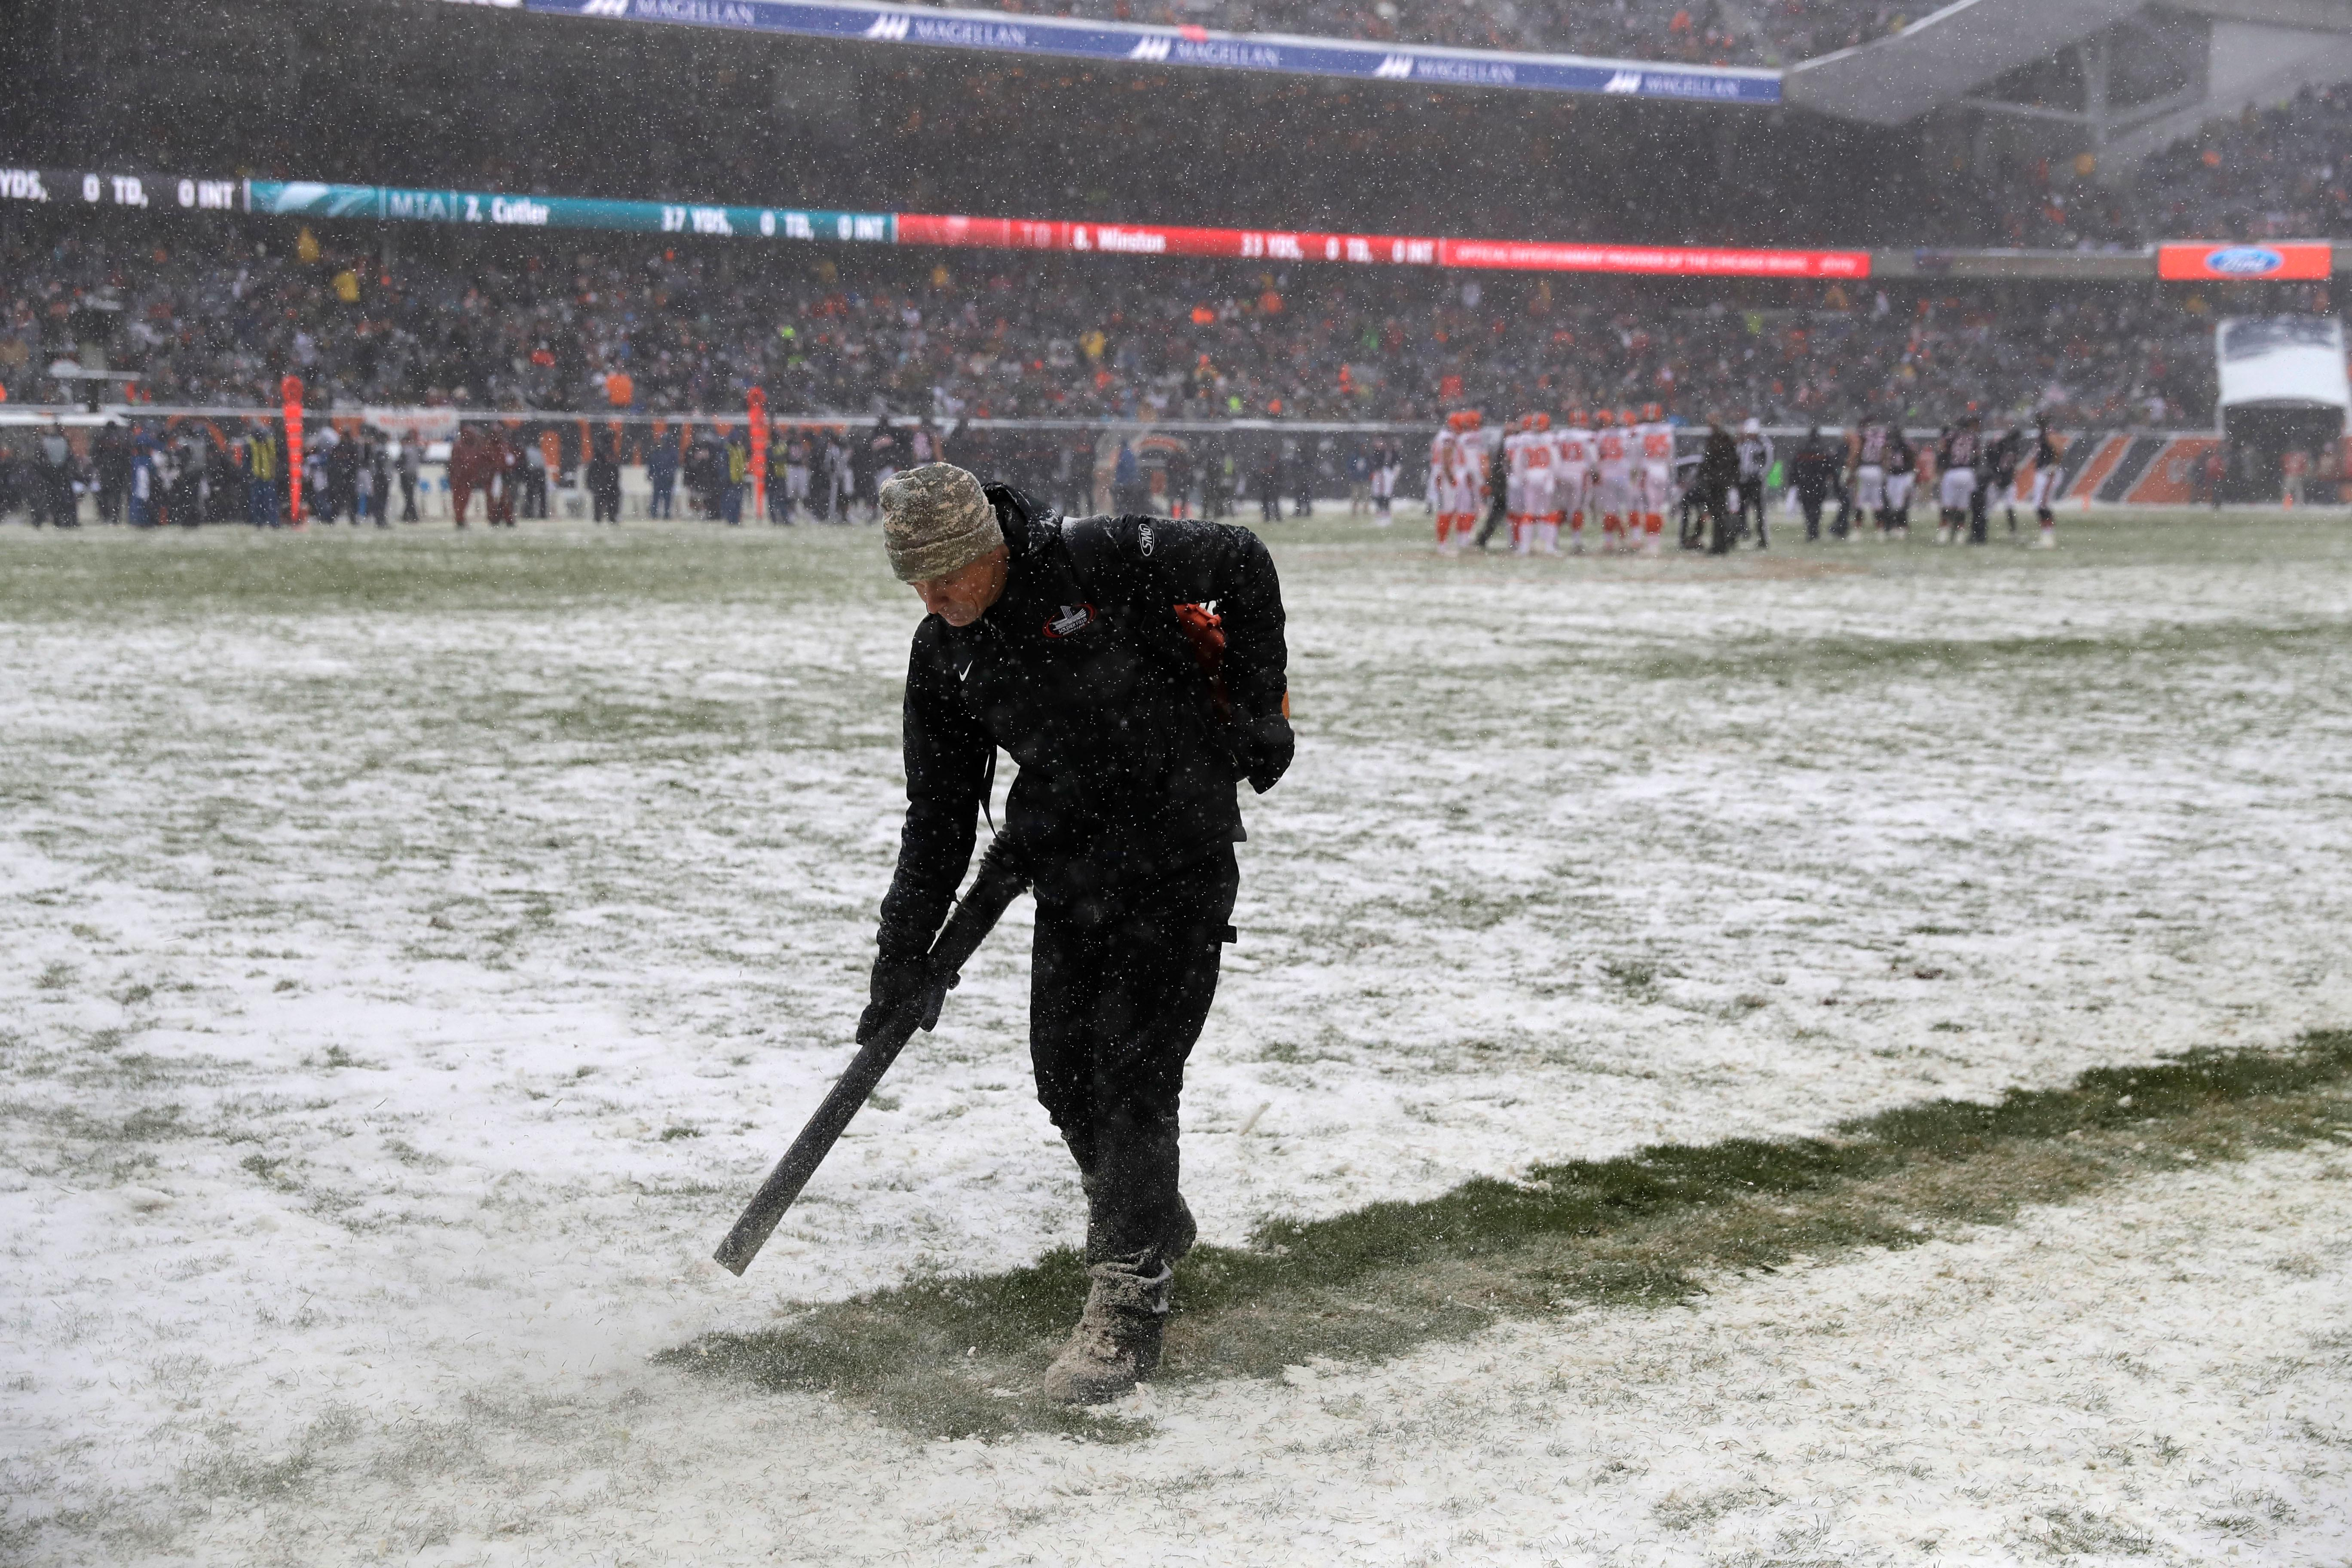 A worker clears snow from field lines at Soldier Field during an NFL football game between the Chicago Bears and Cleveland Browns in Chicago, Sunday, Dec. 24, 2017. (AP Photo/Charles Rex Arbogast)